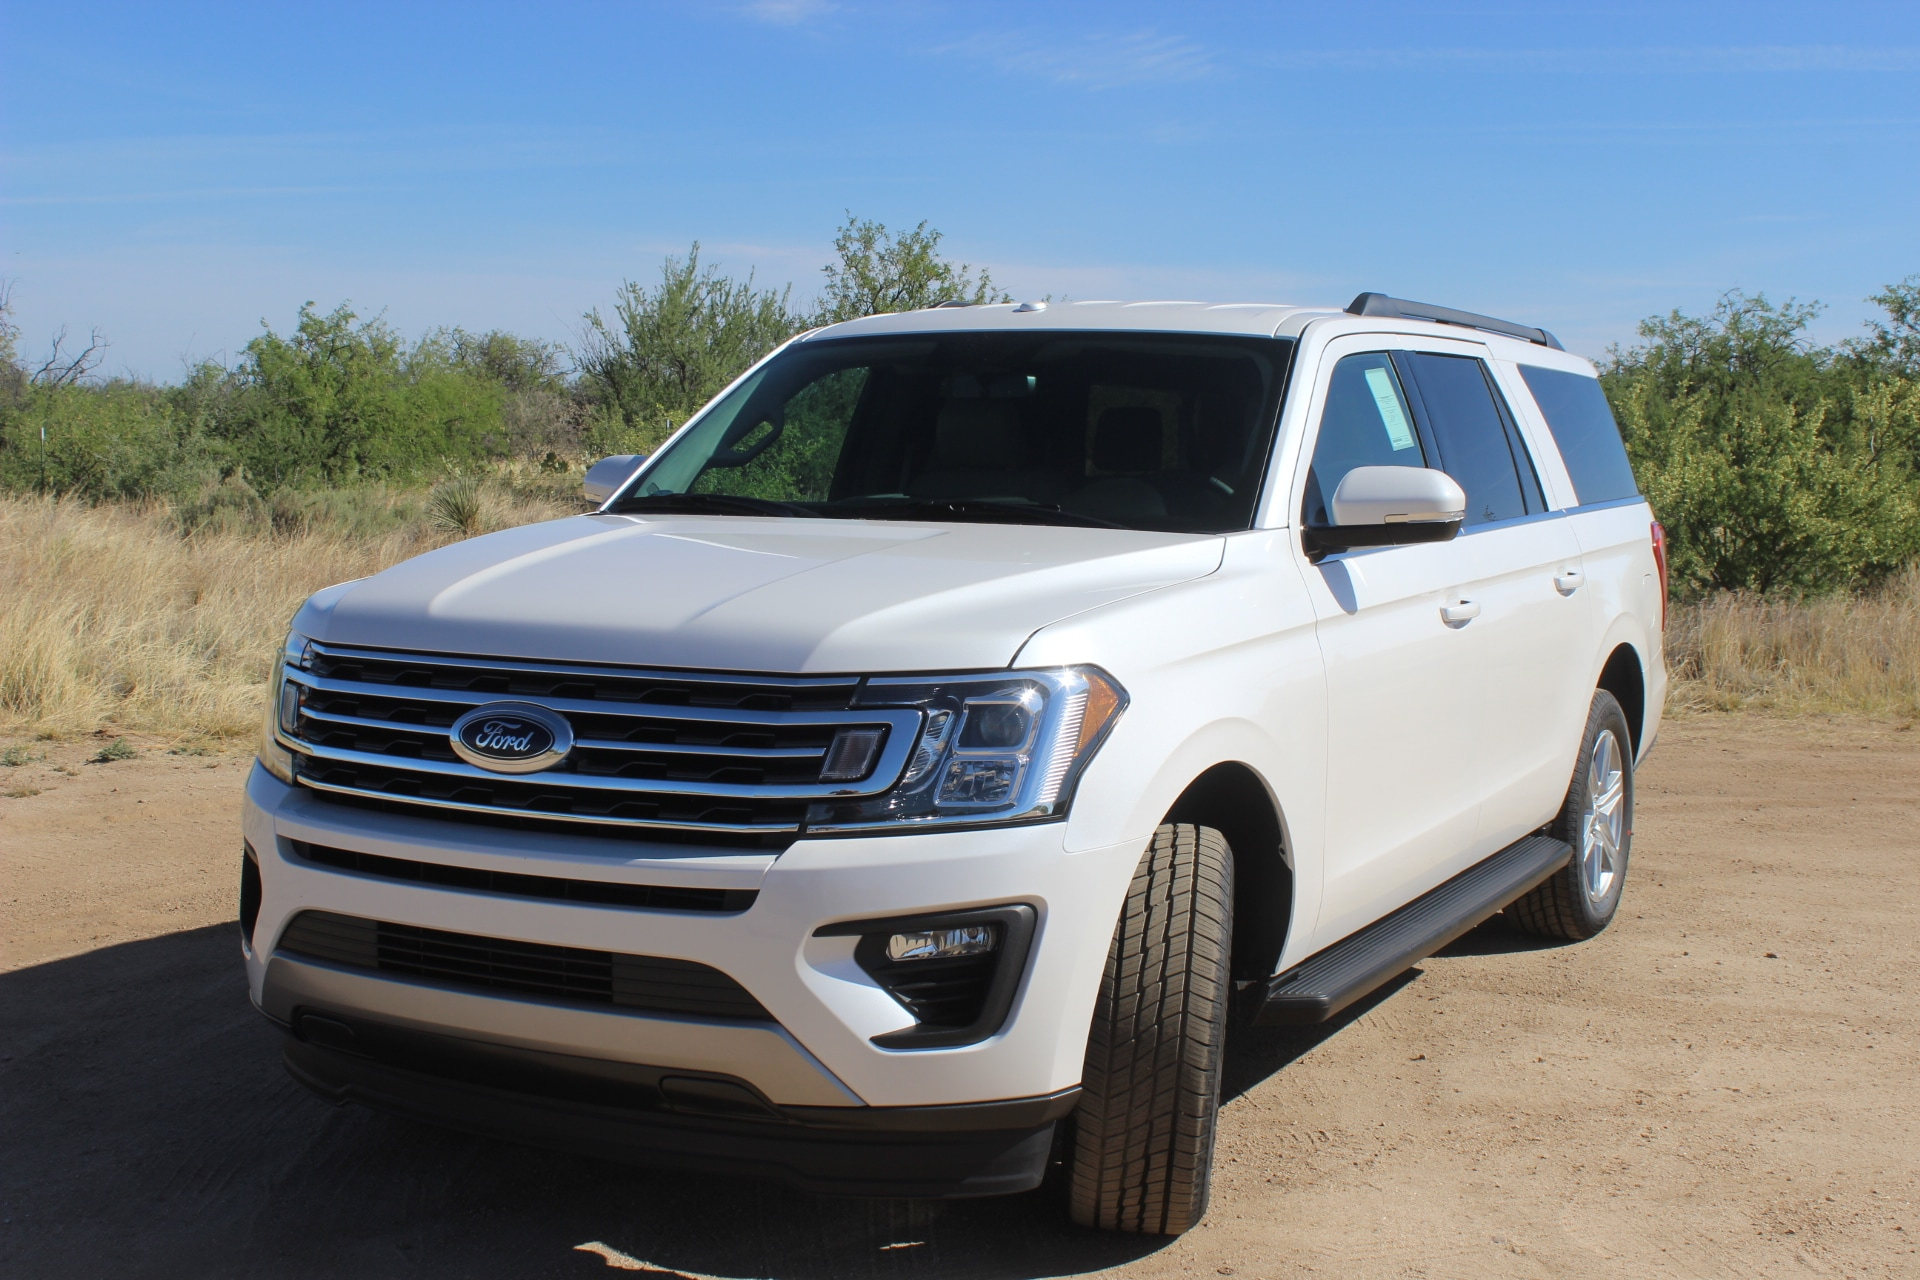 Used 2018 Ford Expedition Max XLT SUV for sale in Oracle, AZ